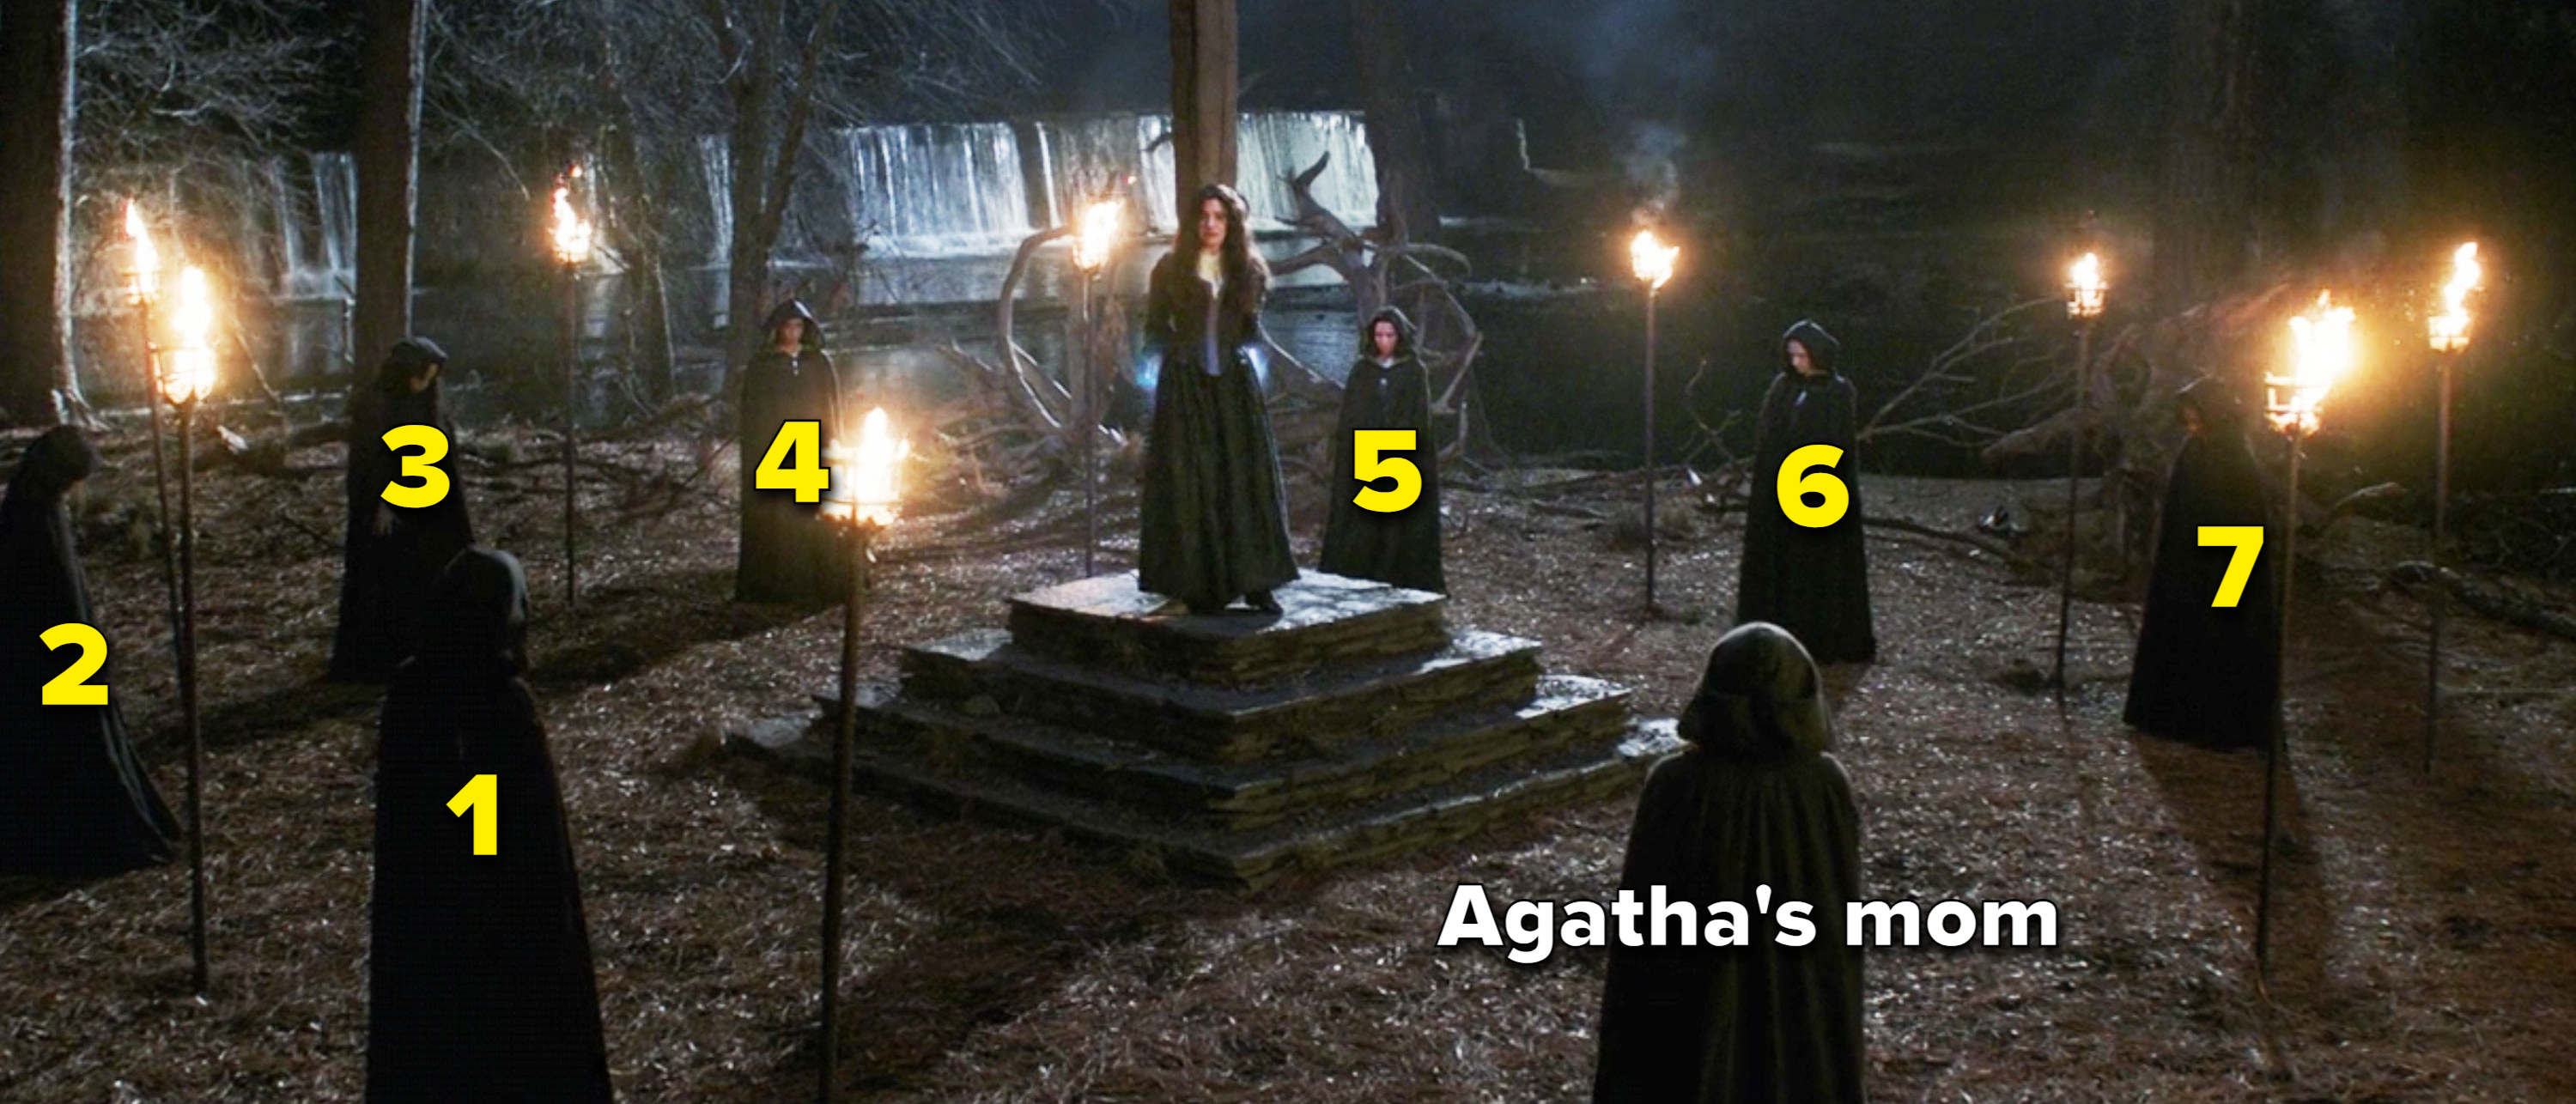 The witches surrounding Agatha numbered 1 to 7